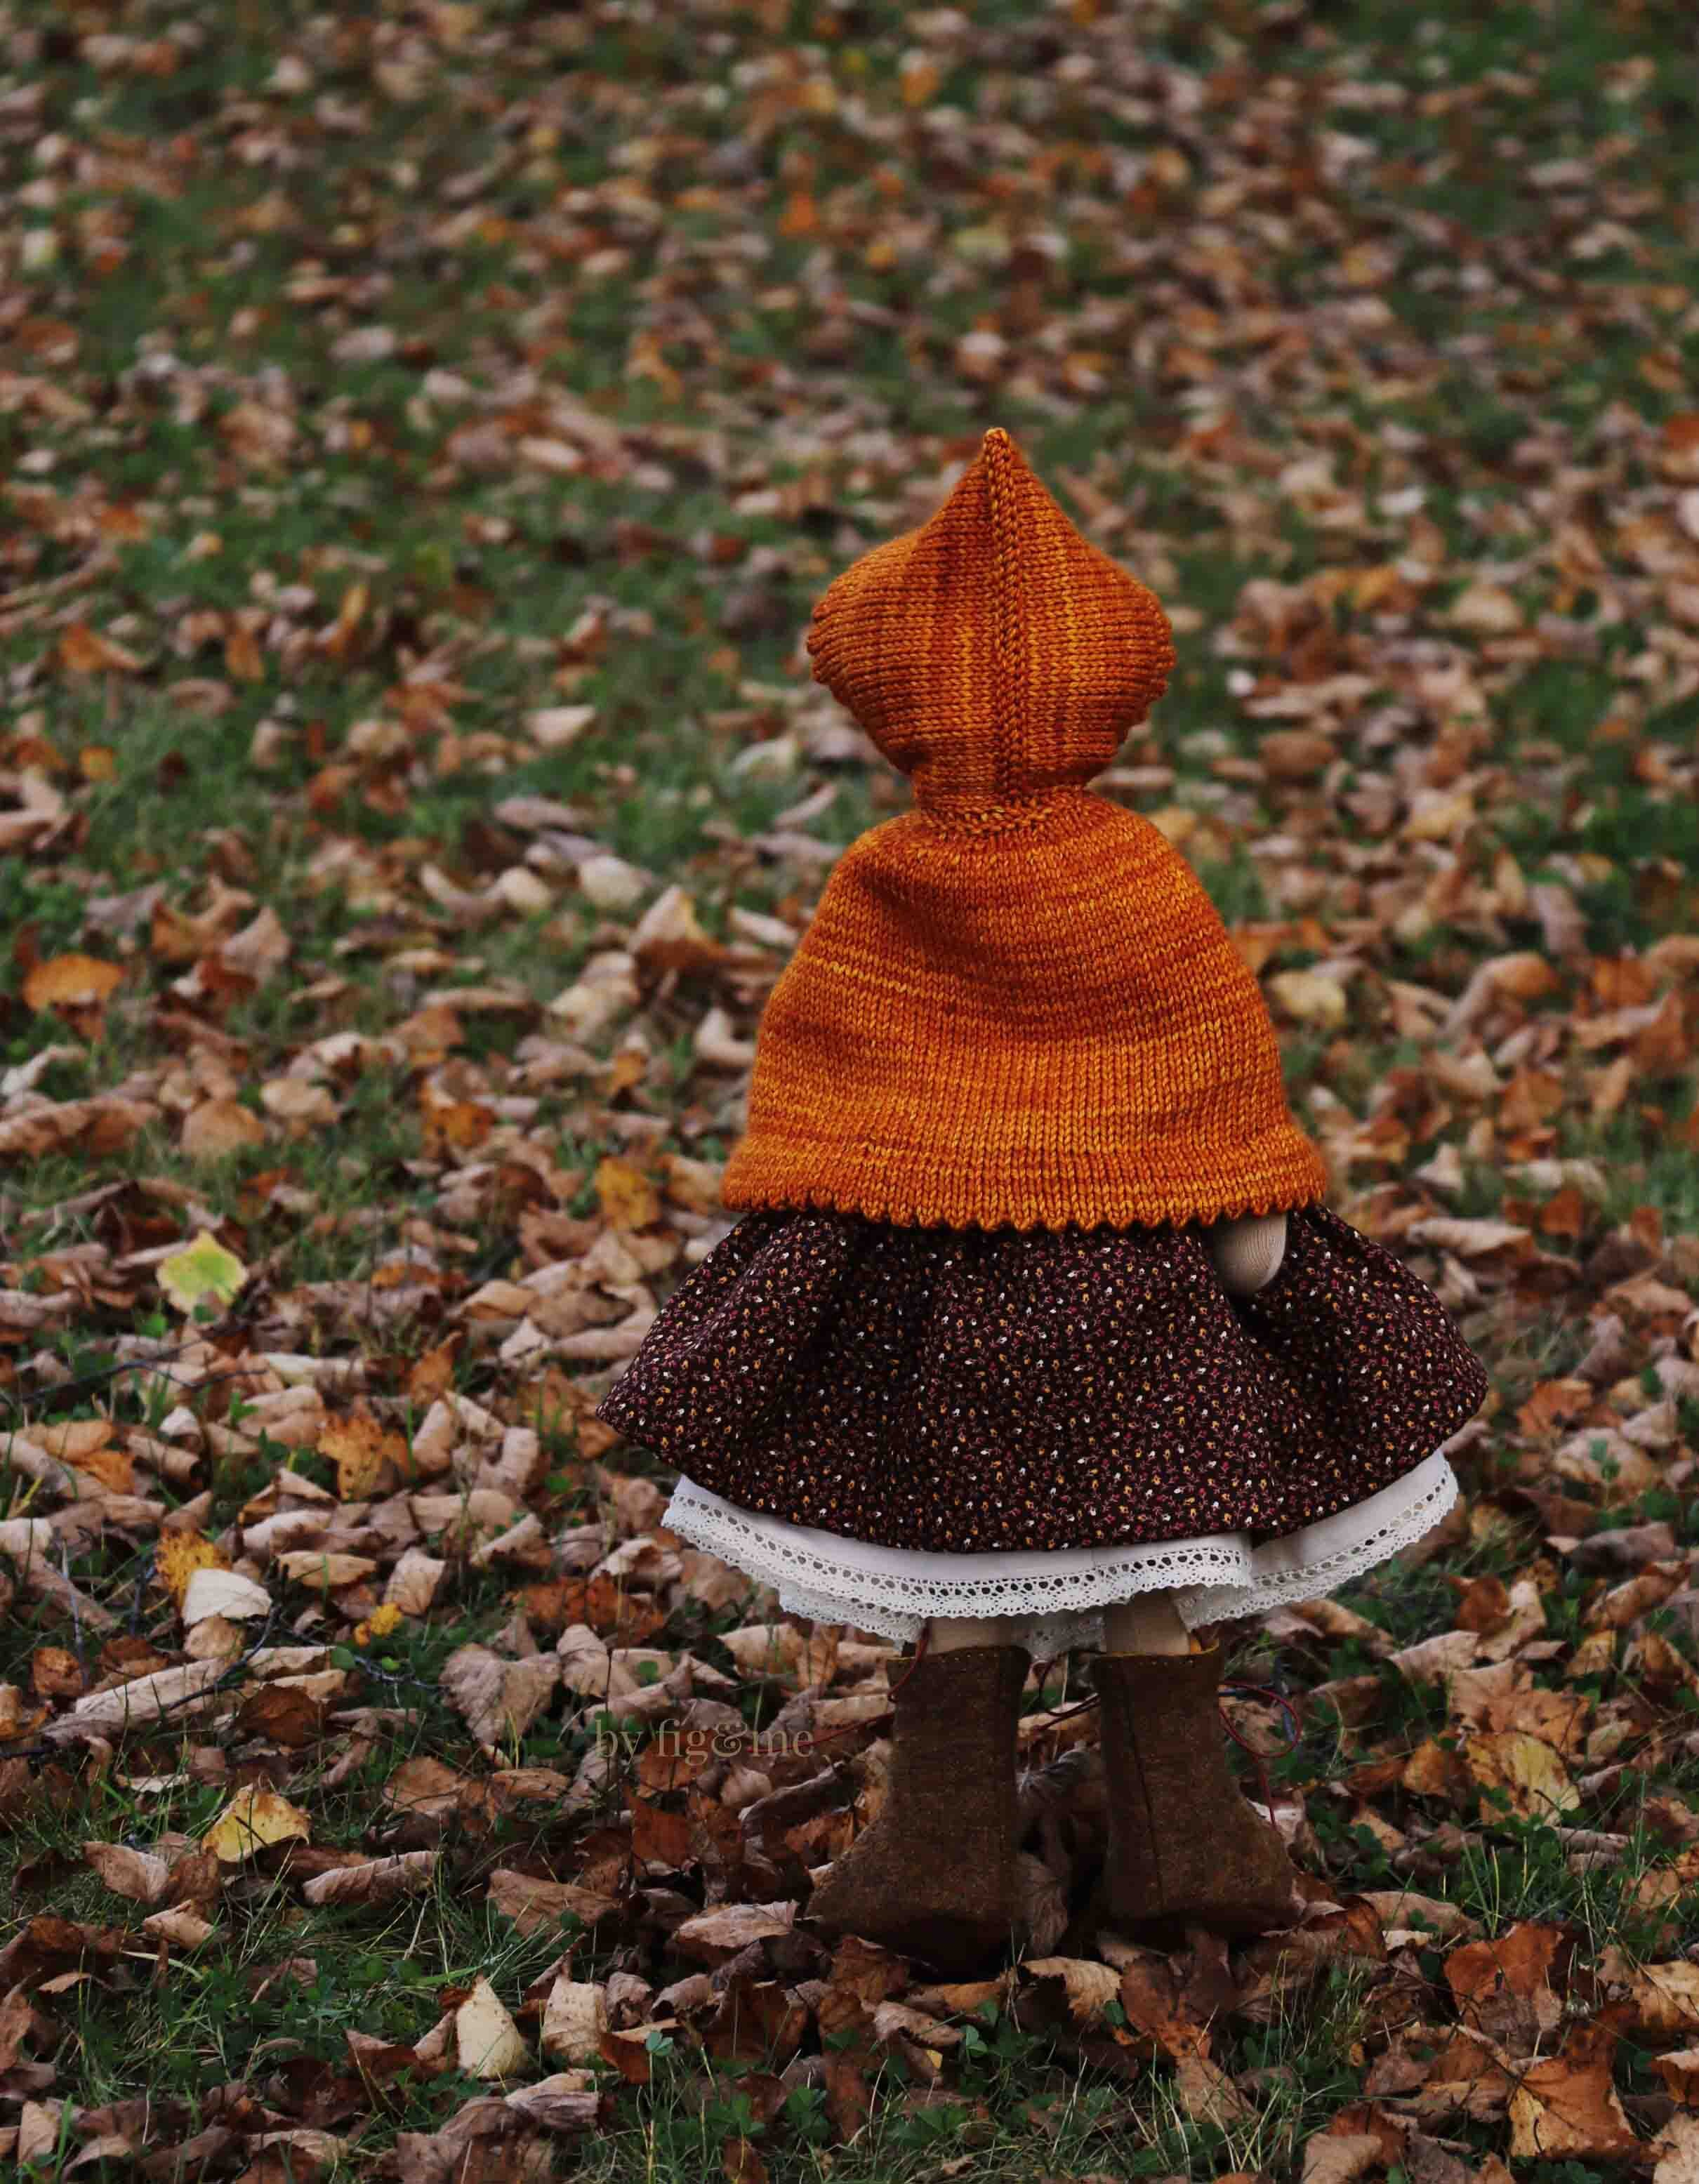 Winona rustling leaves as she takes a walk, art doll by fig and me.